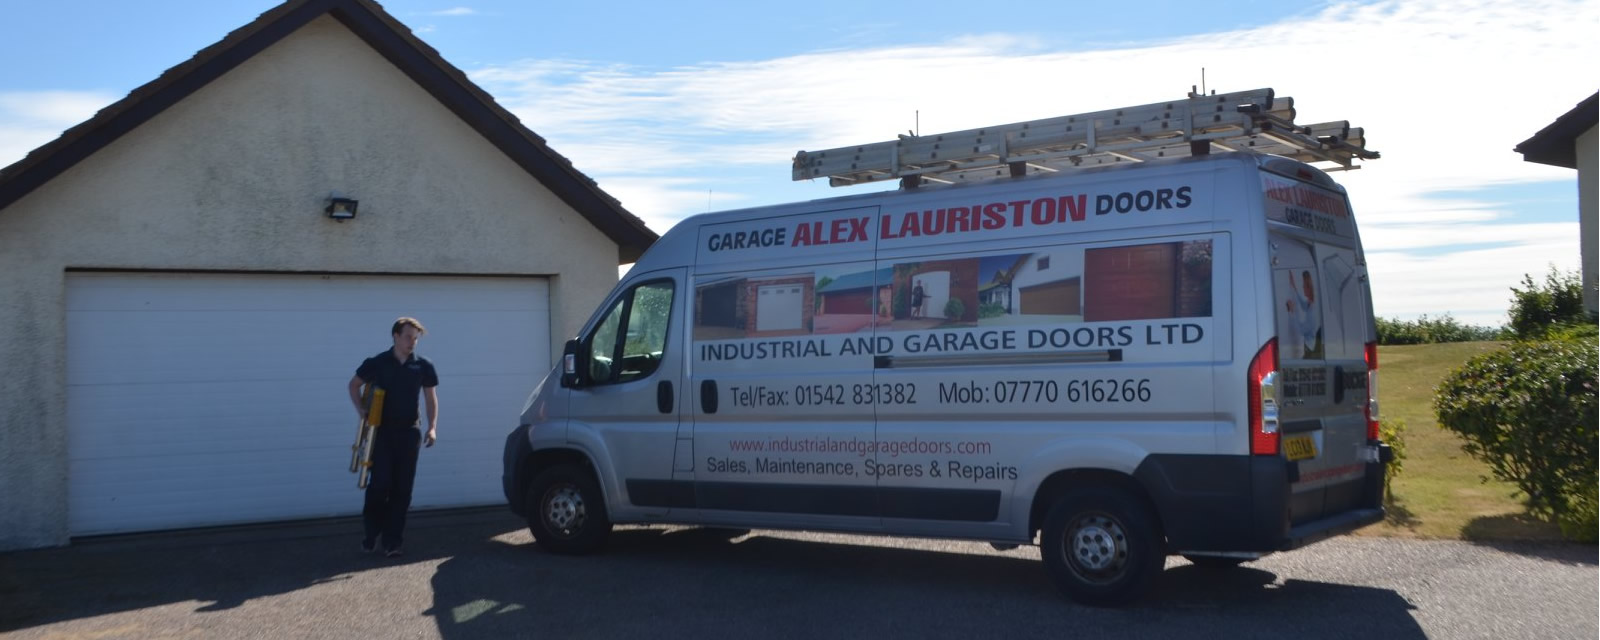 Alex Lauriston Garage Doors